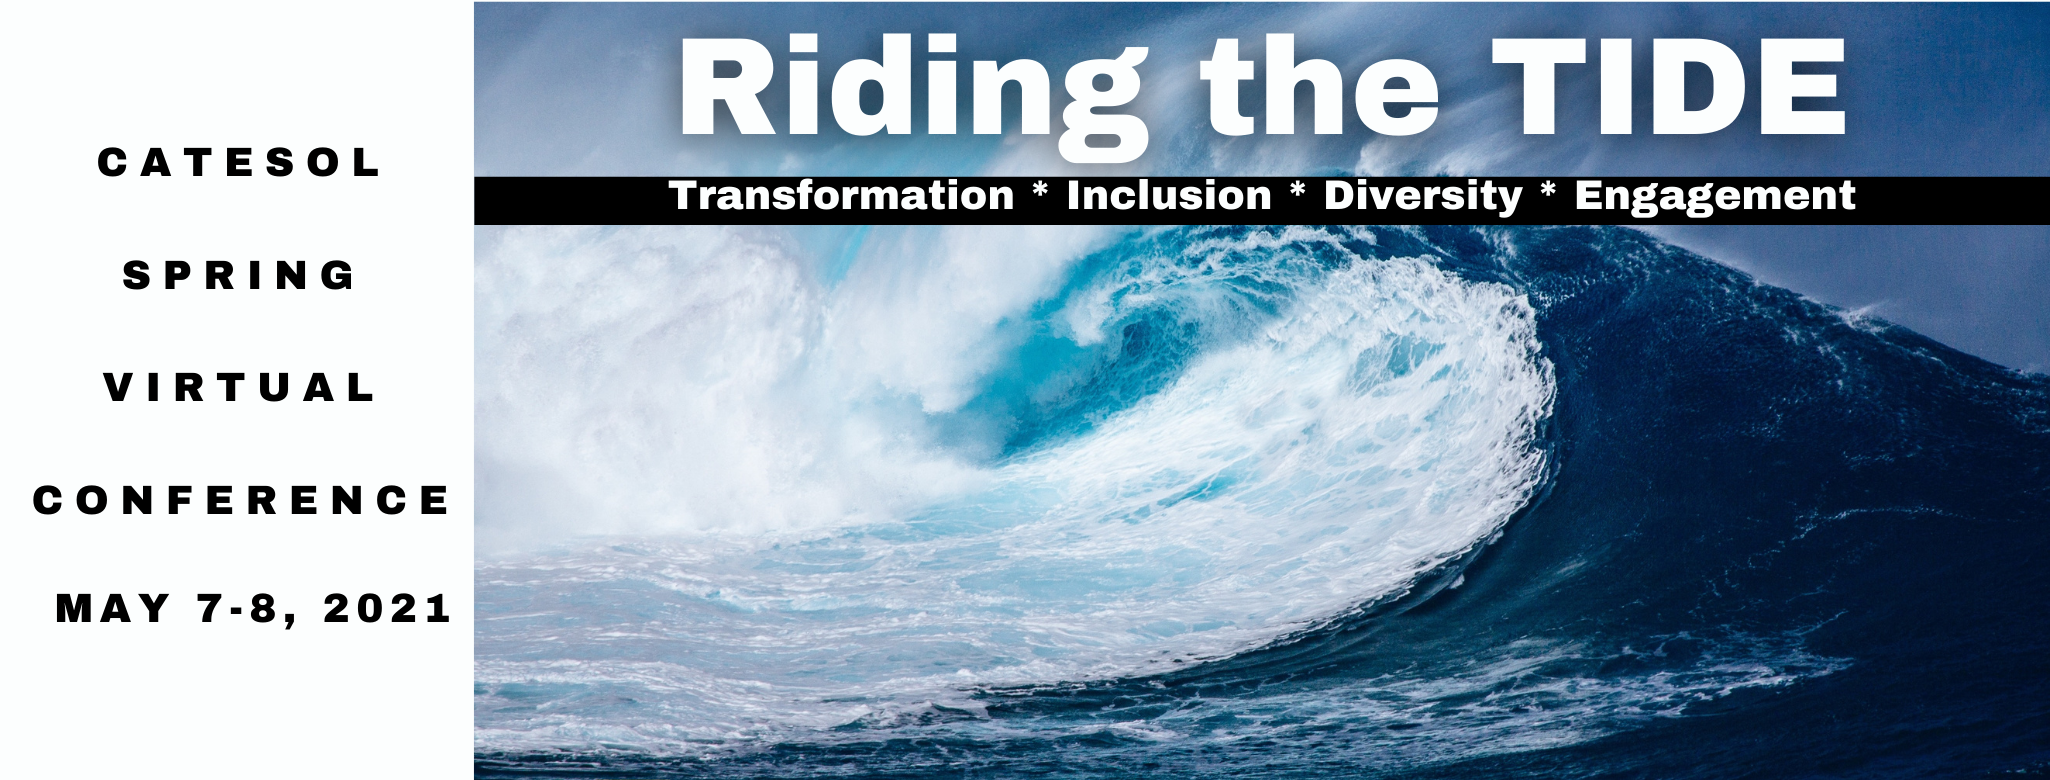 Riding the TIDE: Transformation * Inclusion * Diversity *Engagement